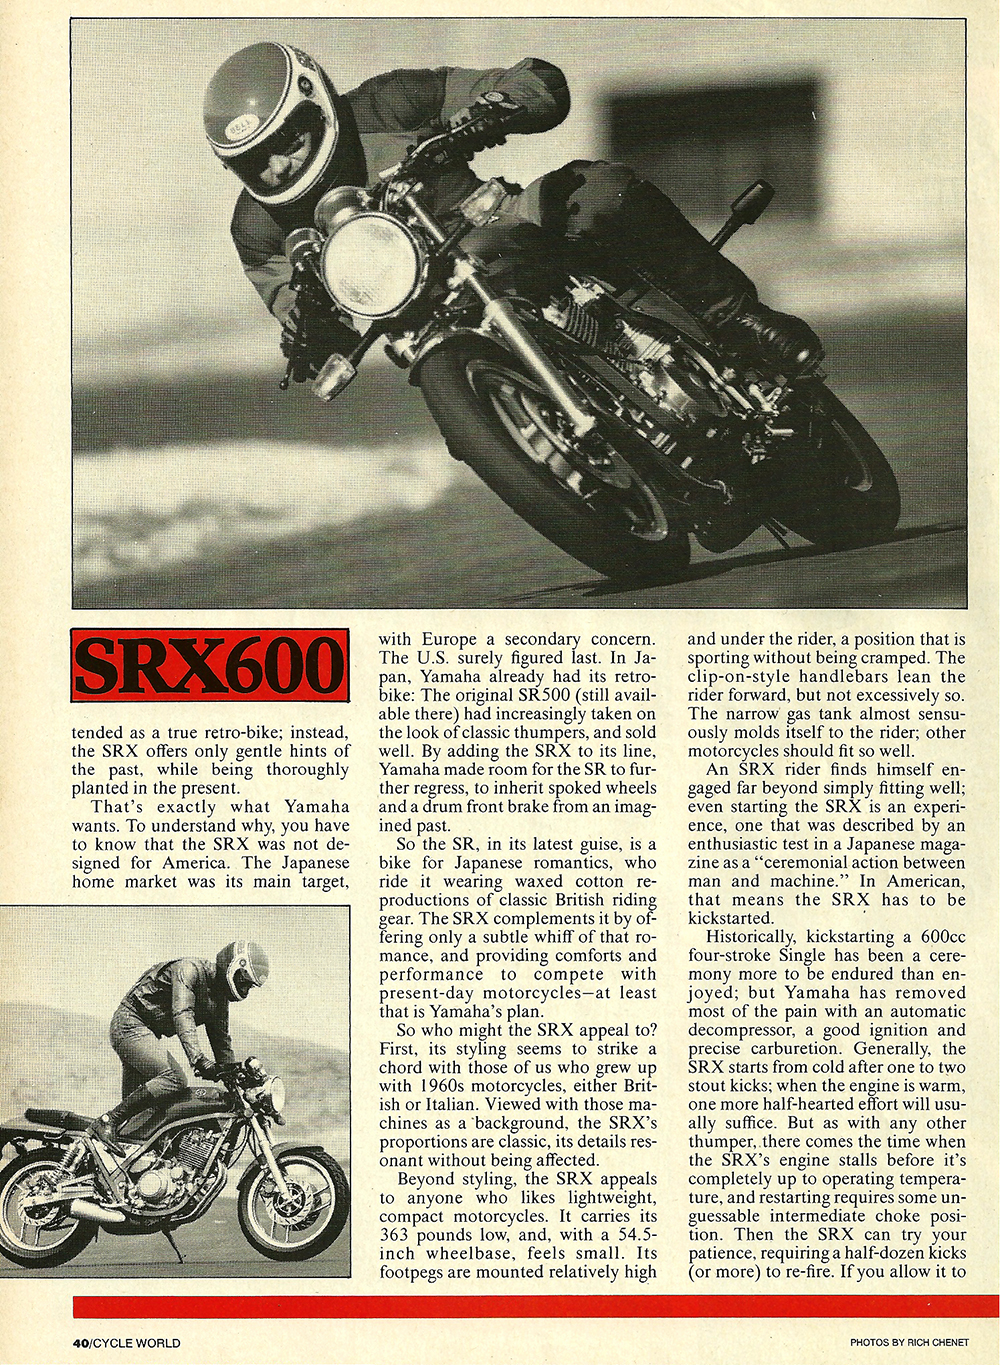 1986 Yamaha SRX600 road test 03.jpg